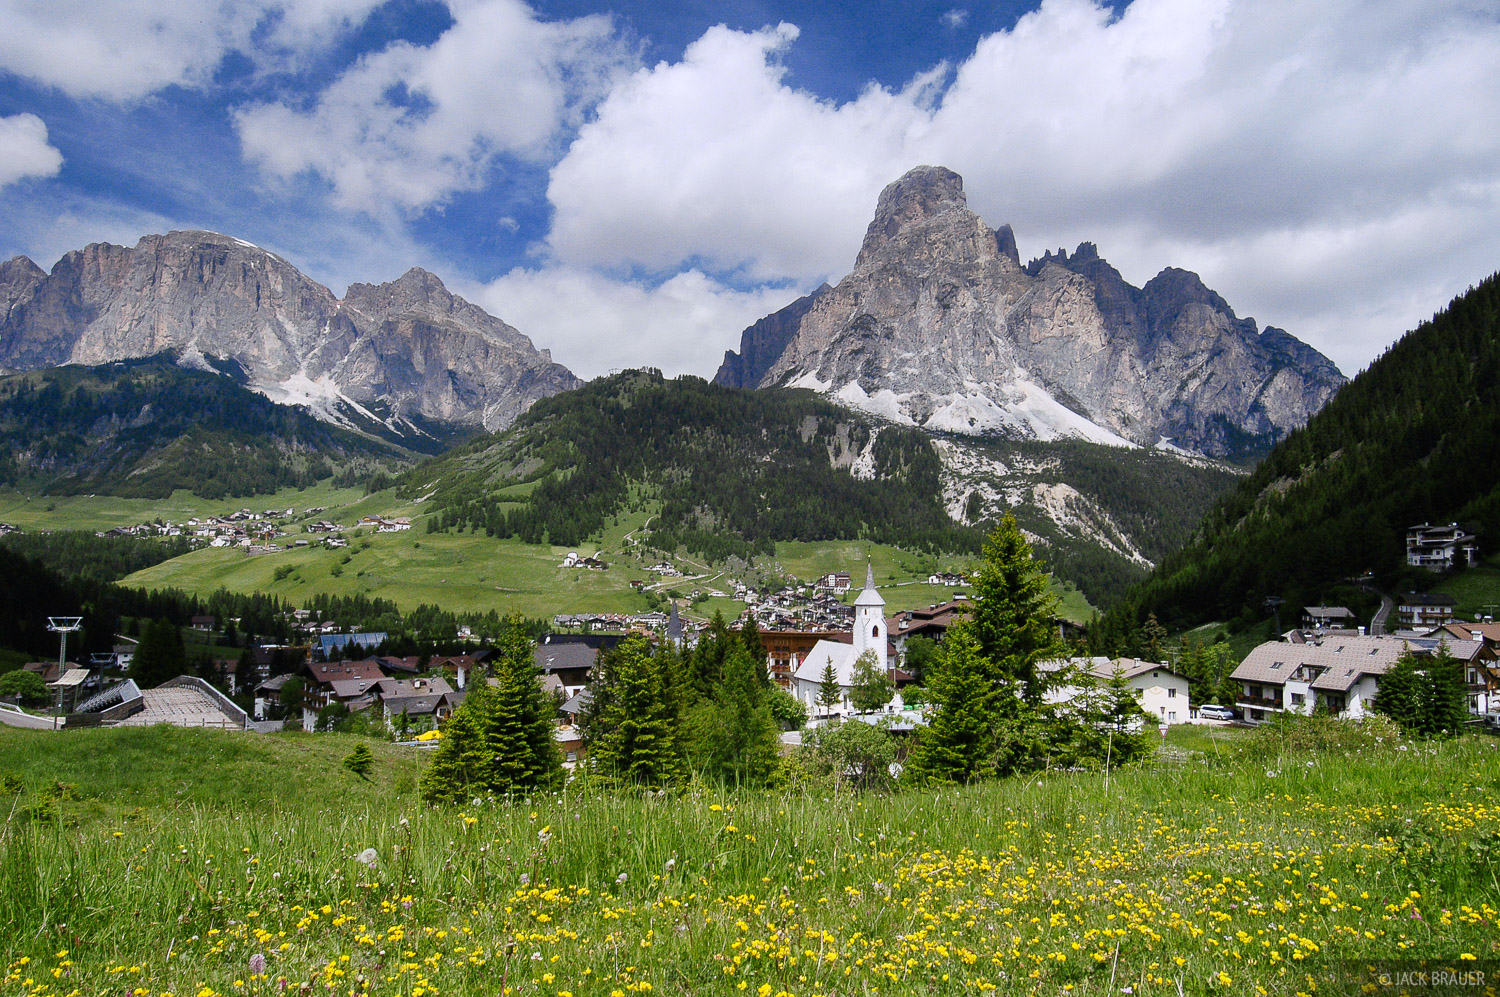 Sassongher, wildflowers, Corvara, Dolomites, Italy, photo